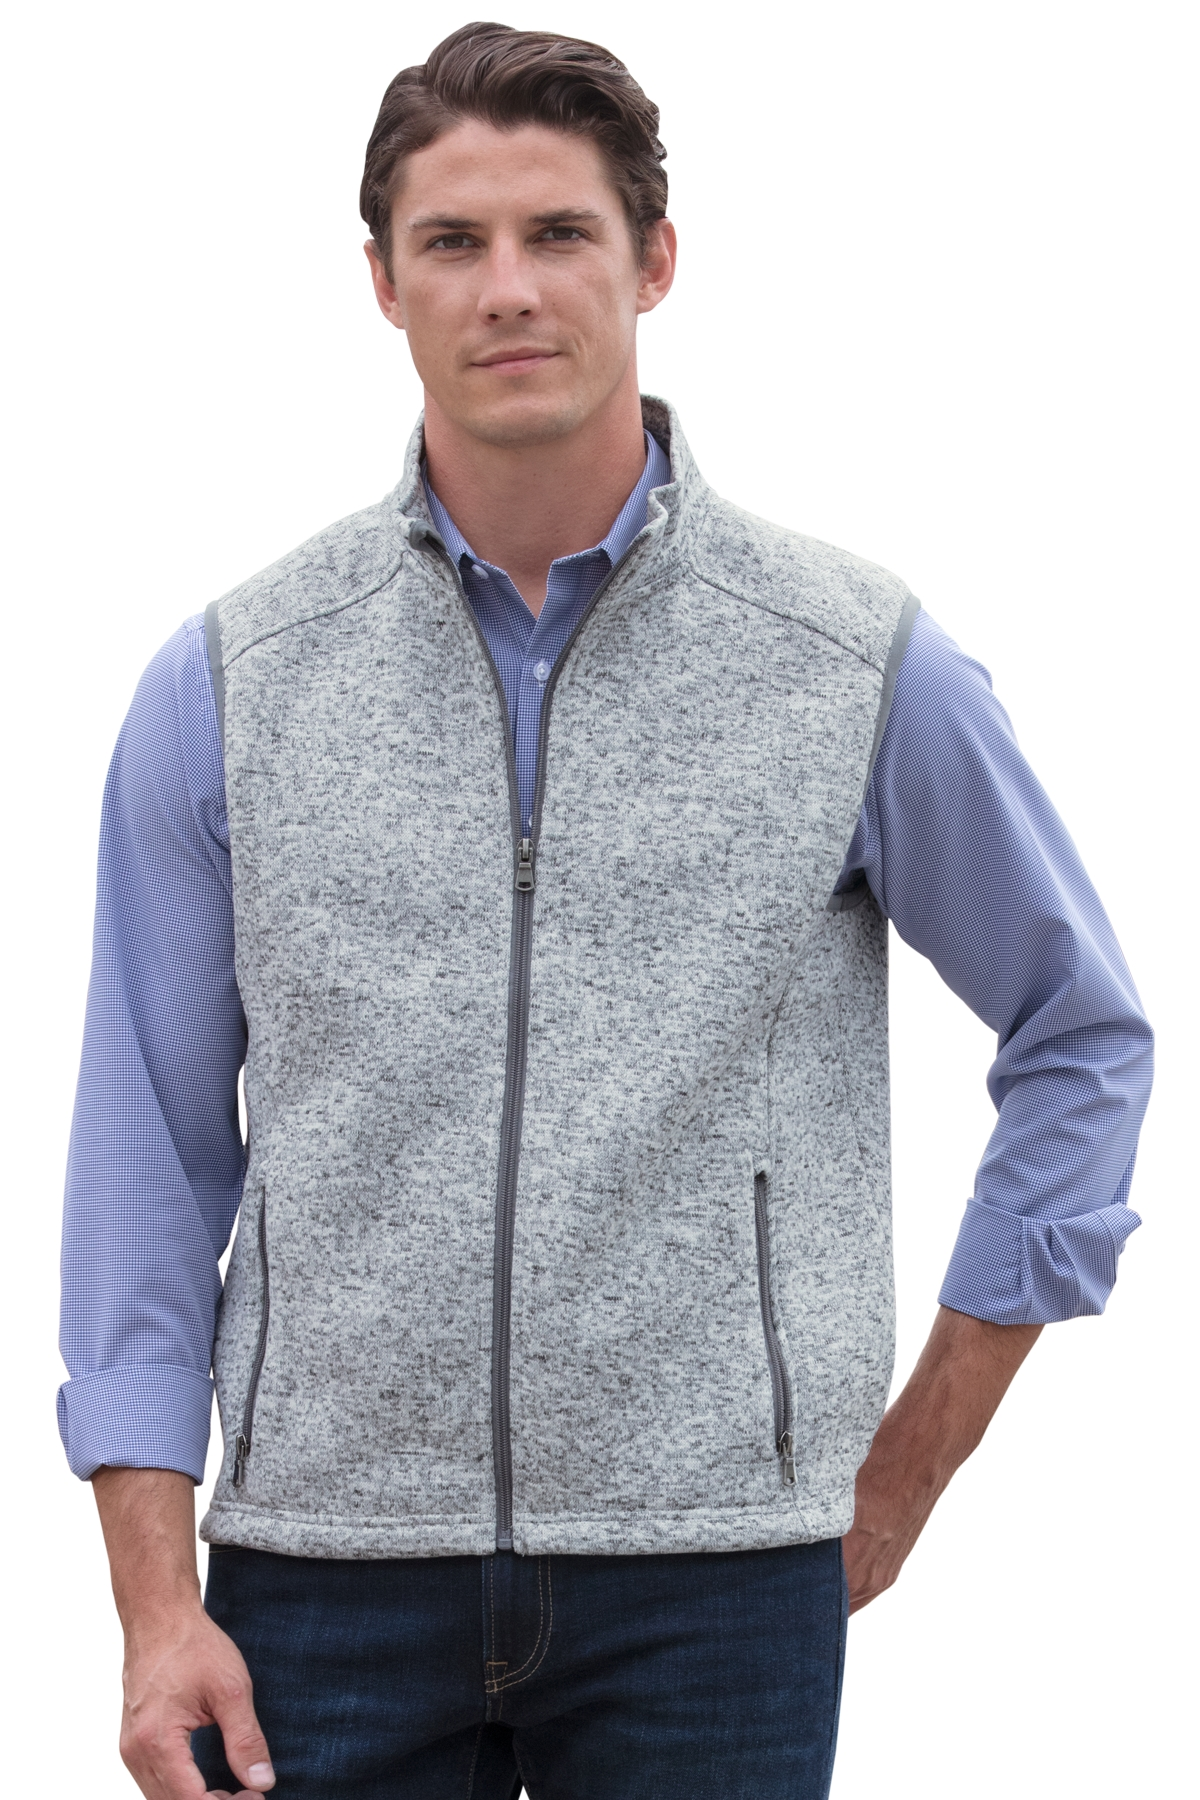 Vantage 3307 - Men's Summit Sweater-Fleece Vest